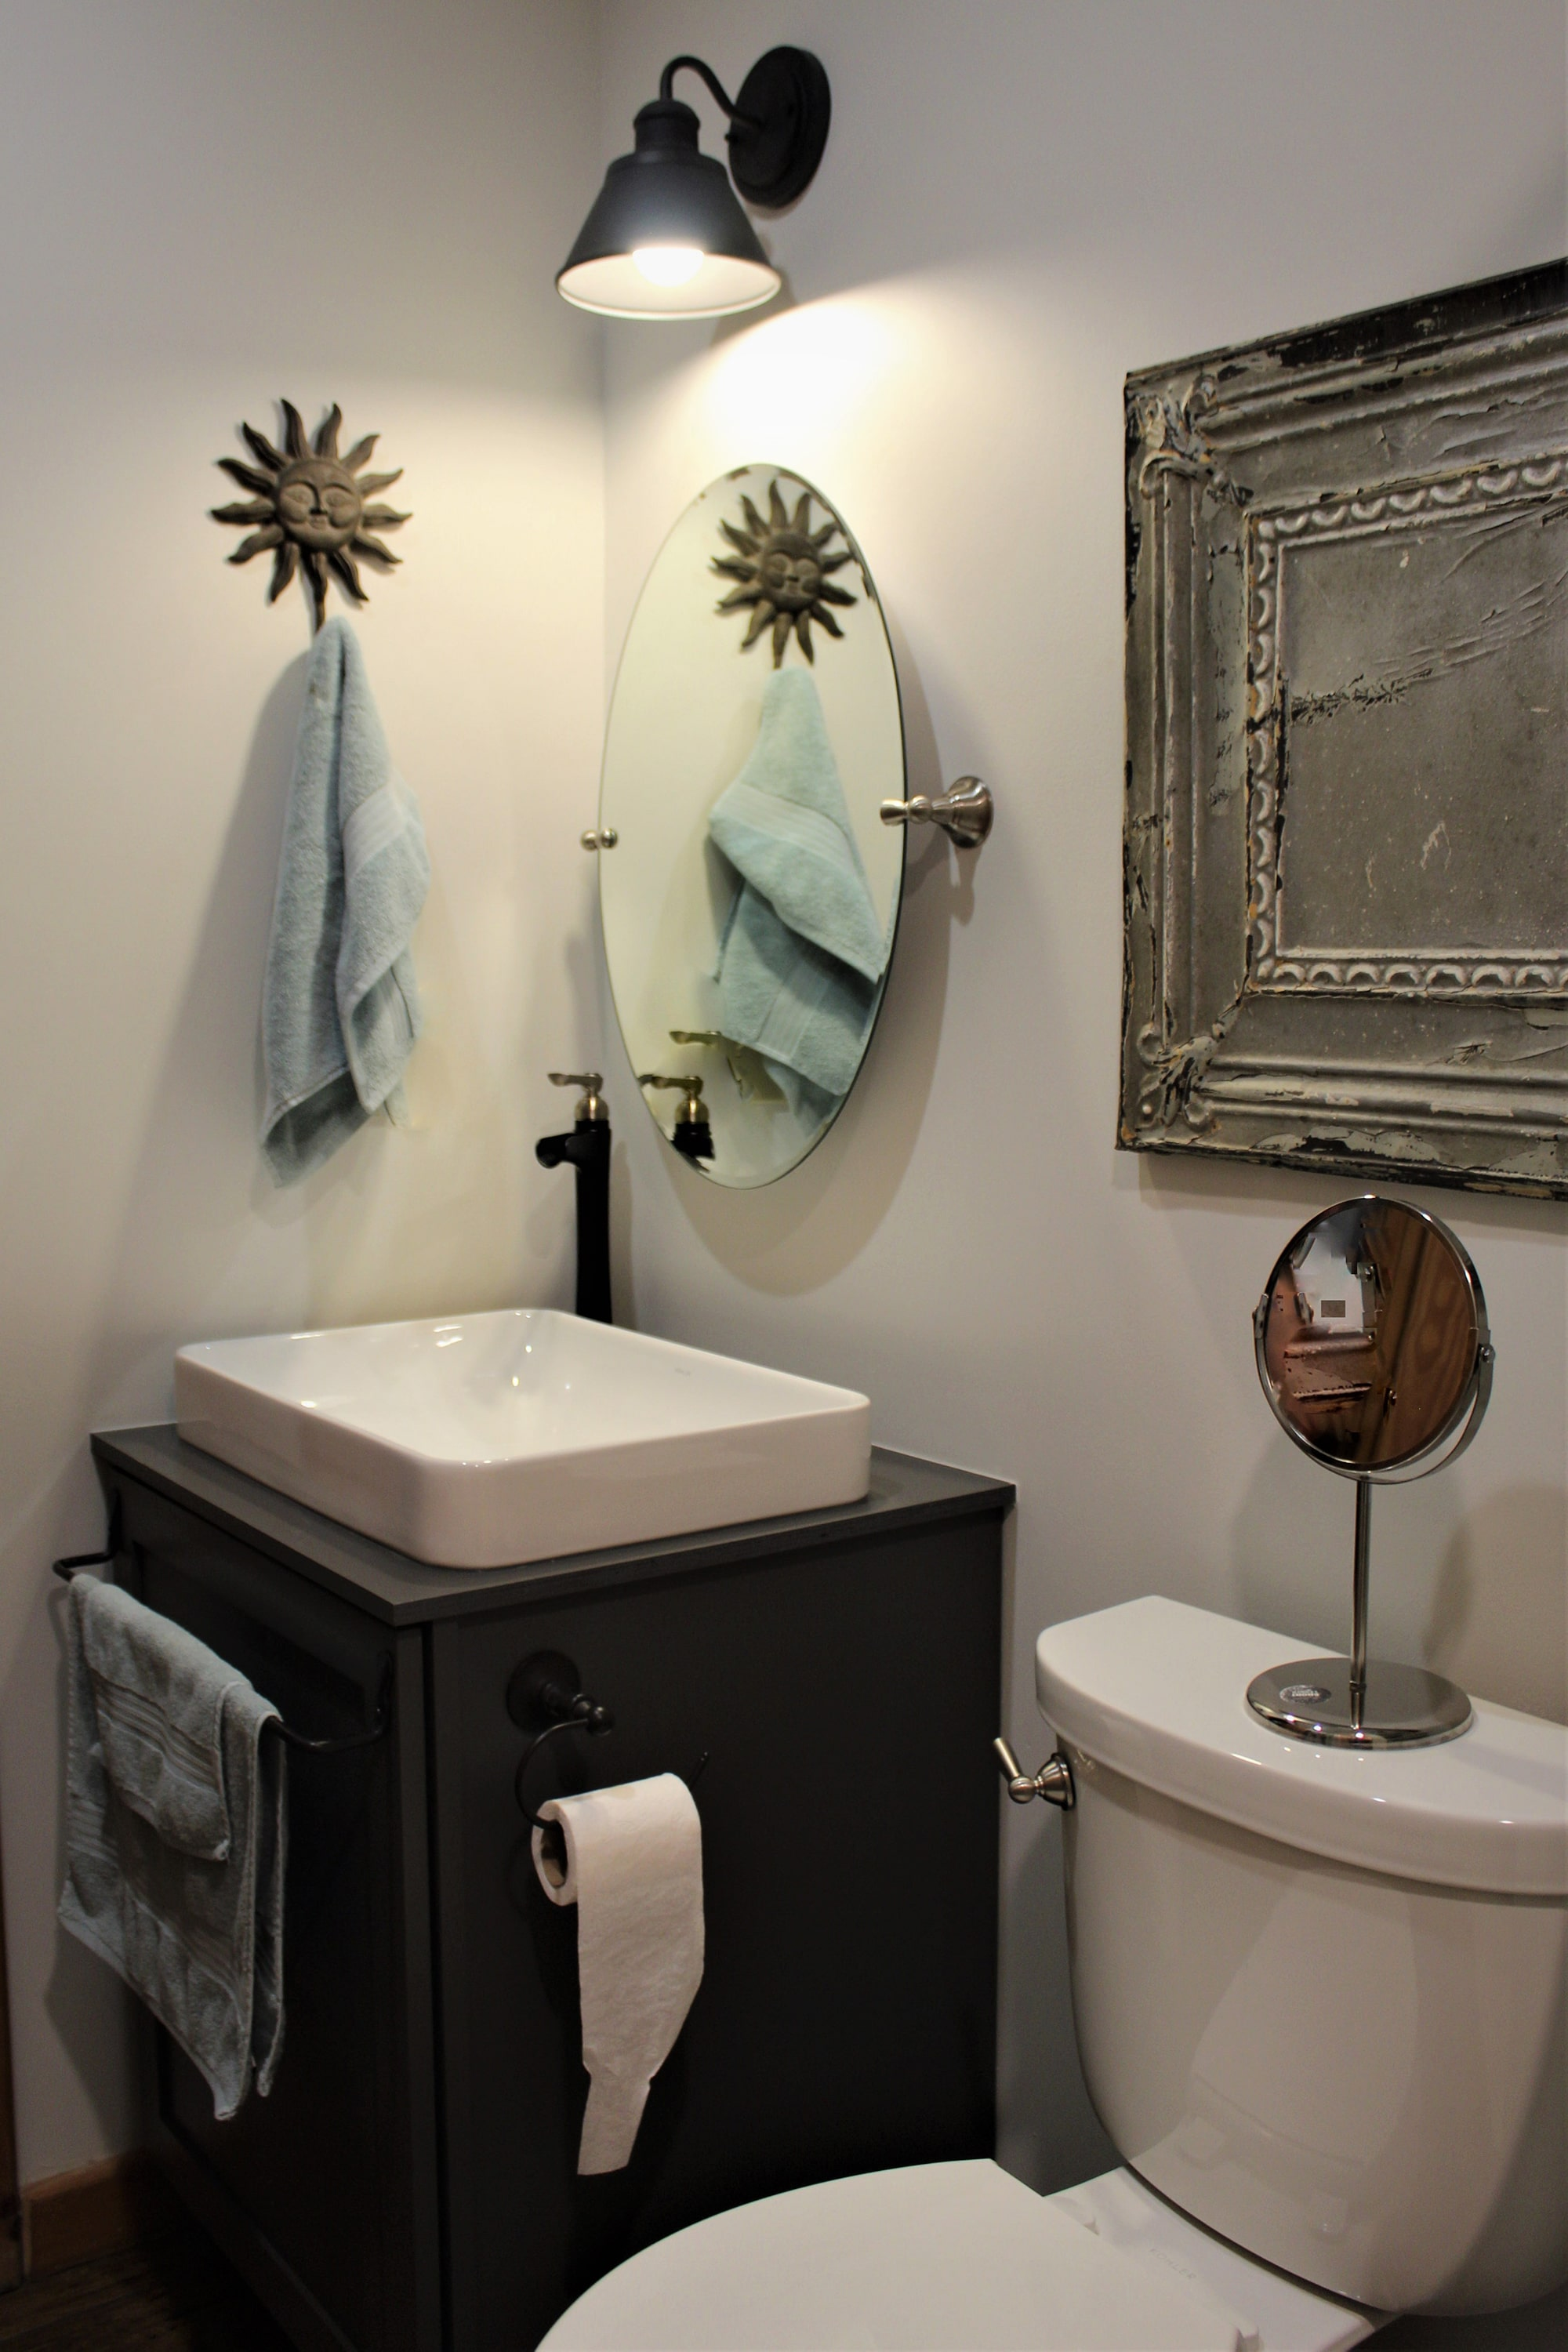 This Chic Industrial bathroom with charcoal gray cabinetry, a white vessel sink with black and satin nickel faucet, barn style lighting, and weathered accents work together to create a bath full of charm and warmth.